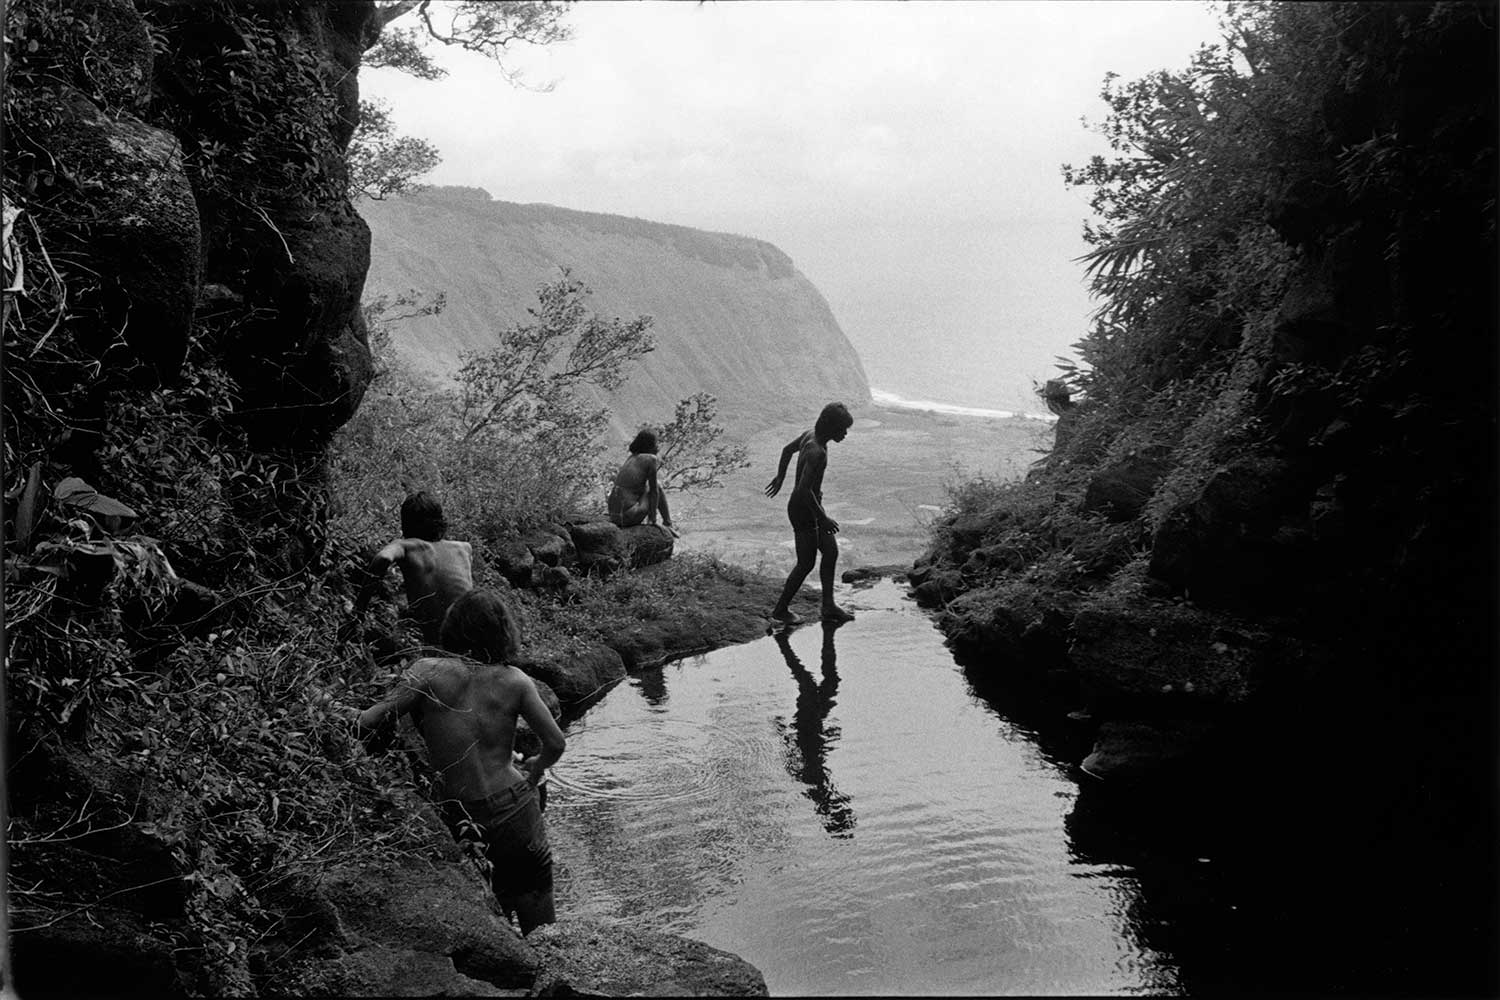 Black and white photograph of youths hiking above Hi'ilawe Falls in Waipi'o Valley